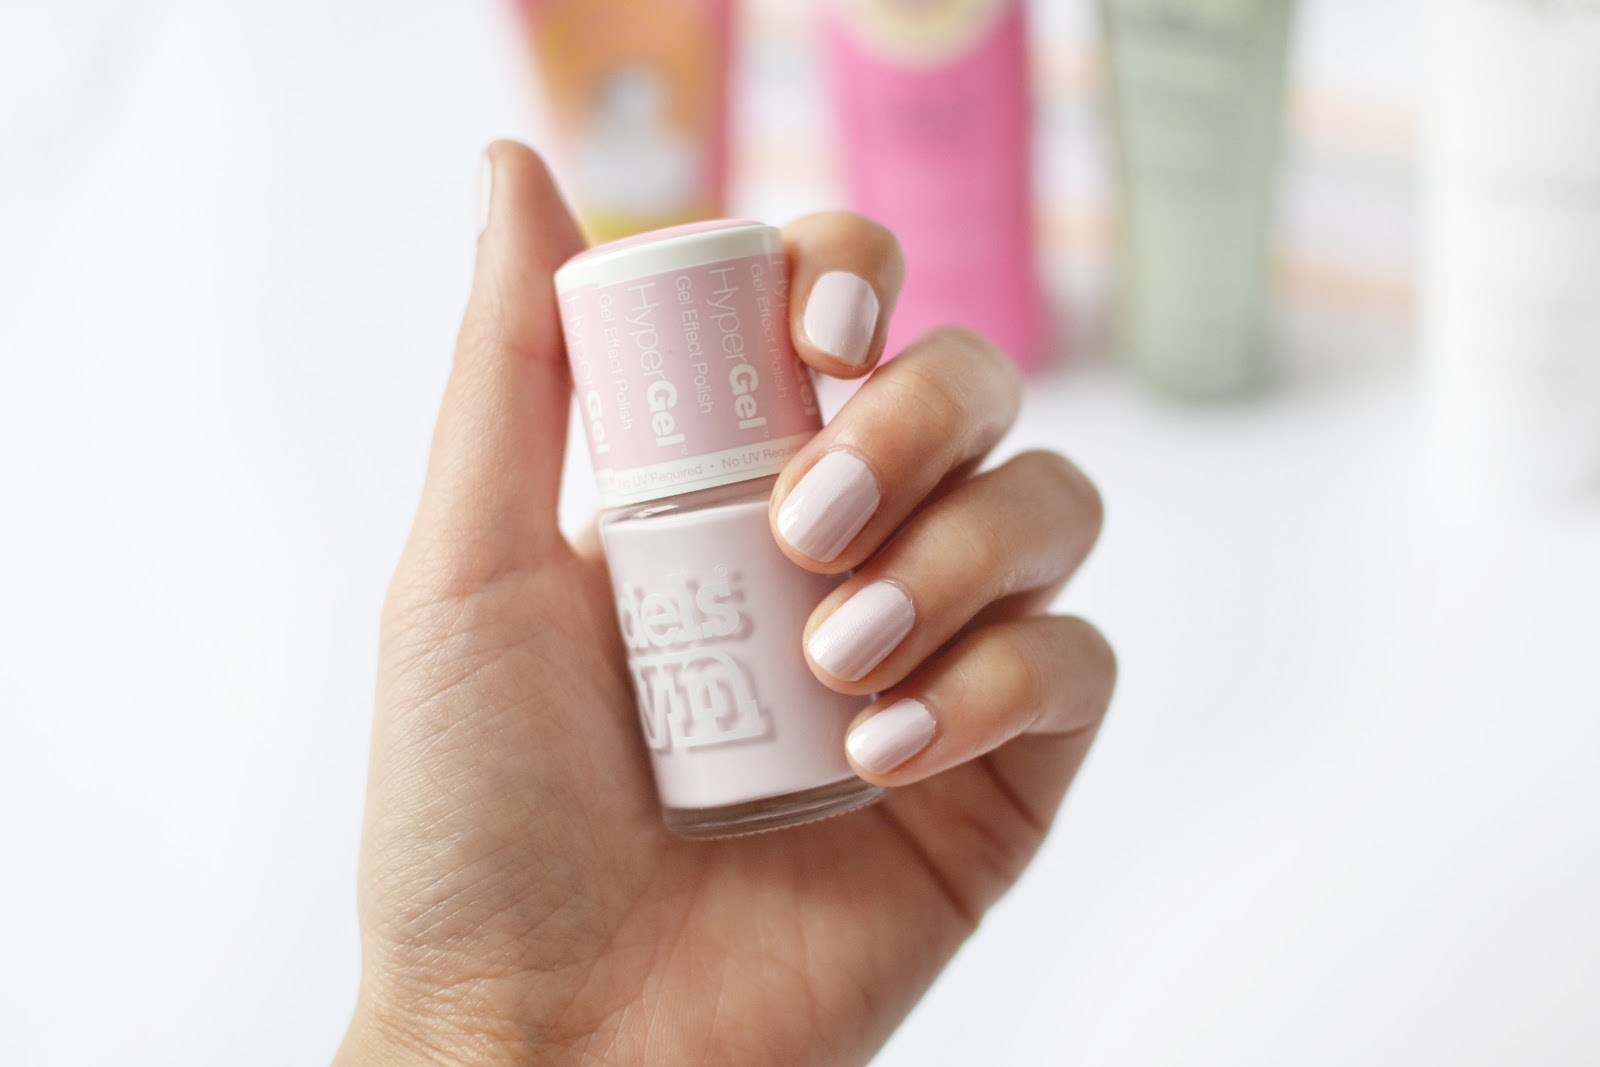 Models Own HyperGel in shade Paradise Pink